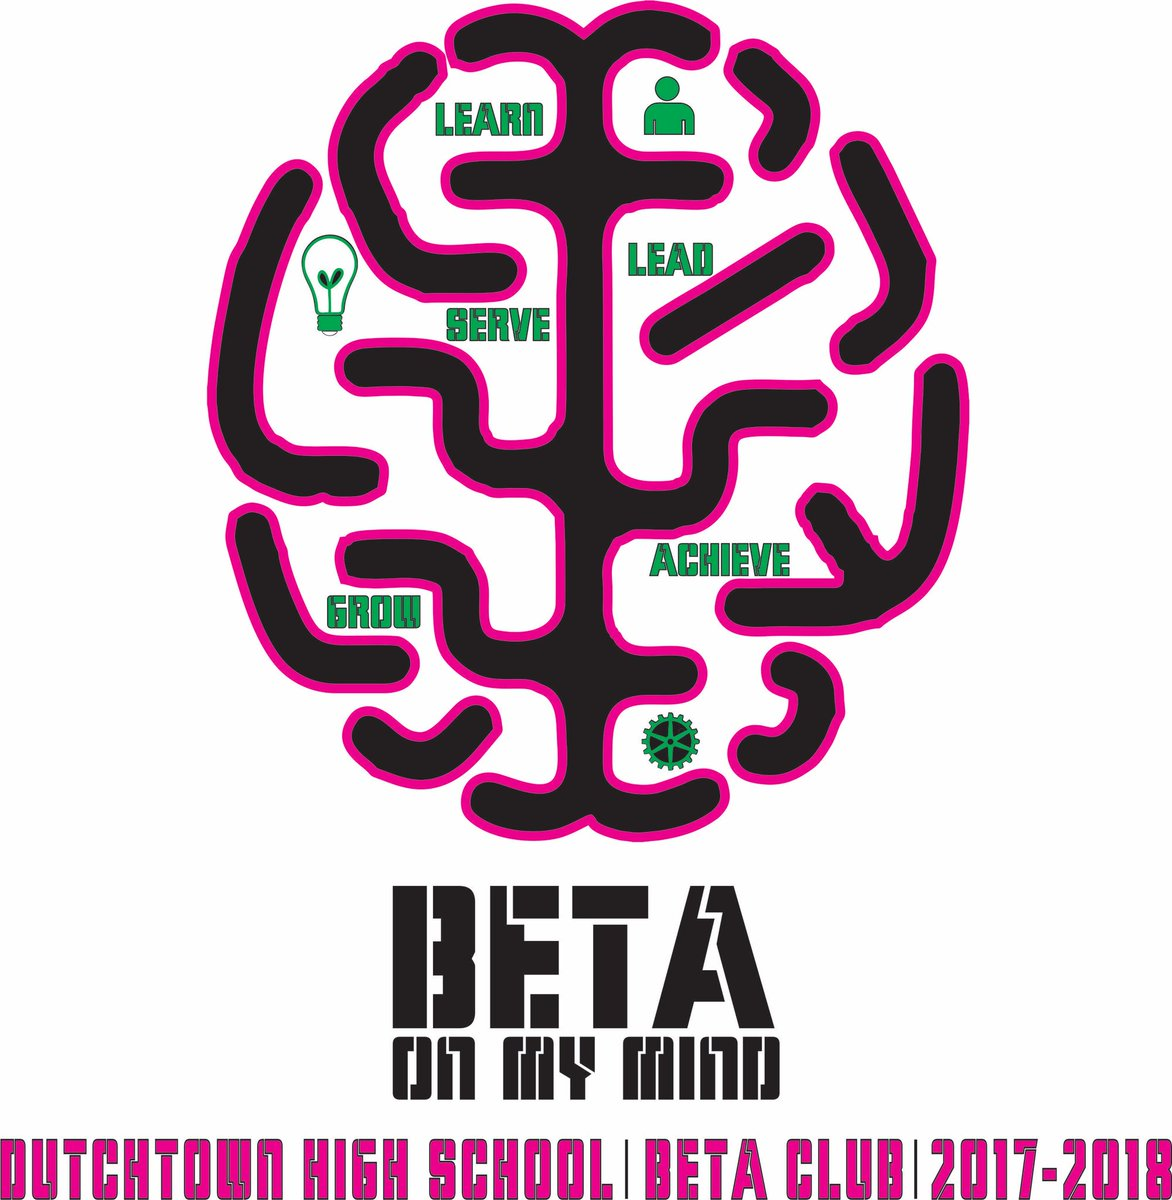 Dutchtown beta club dthsbetaclub twitter dutchtown beta is excited for state convention in a couple of weeks labeta betaonmindpicitterpt58dui5qb buycottarizona